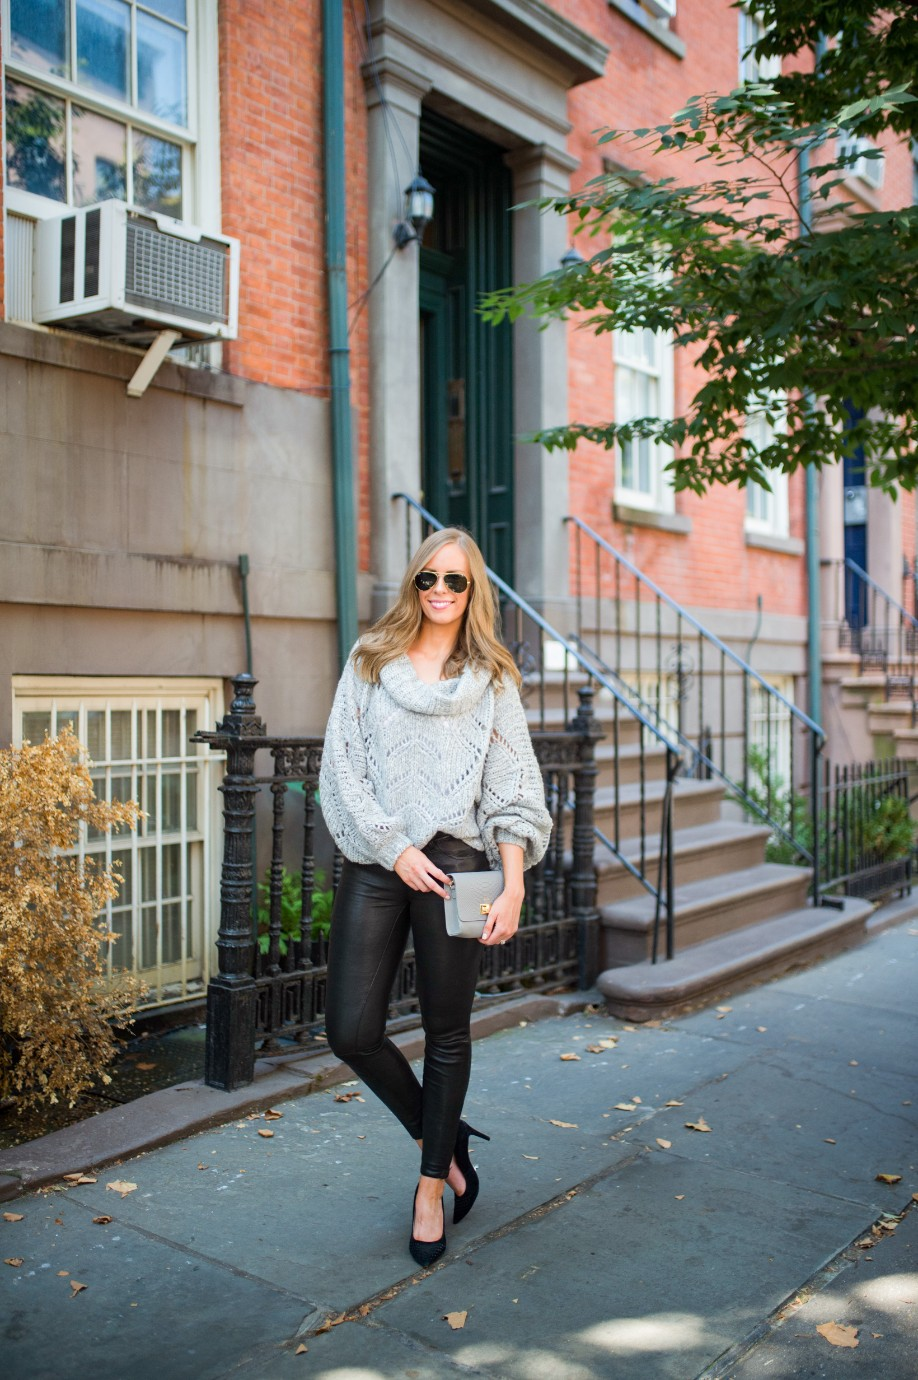 leather pants outfit and grey knit sweater fashion blogger outfit ideas fall winter style lauren slade style elixir 2